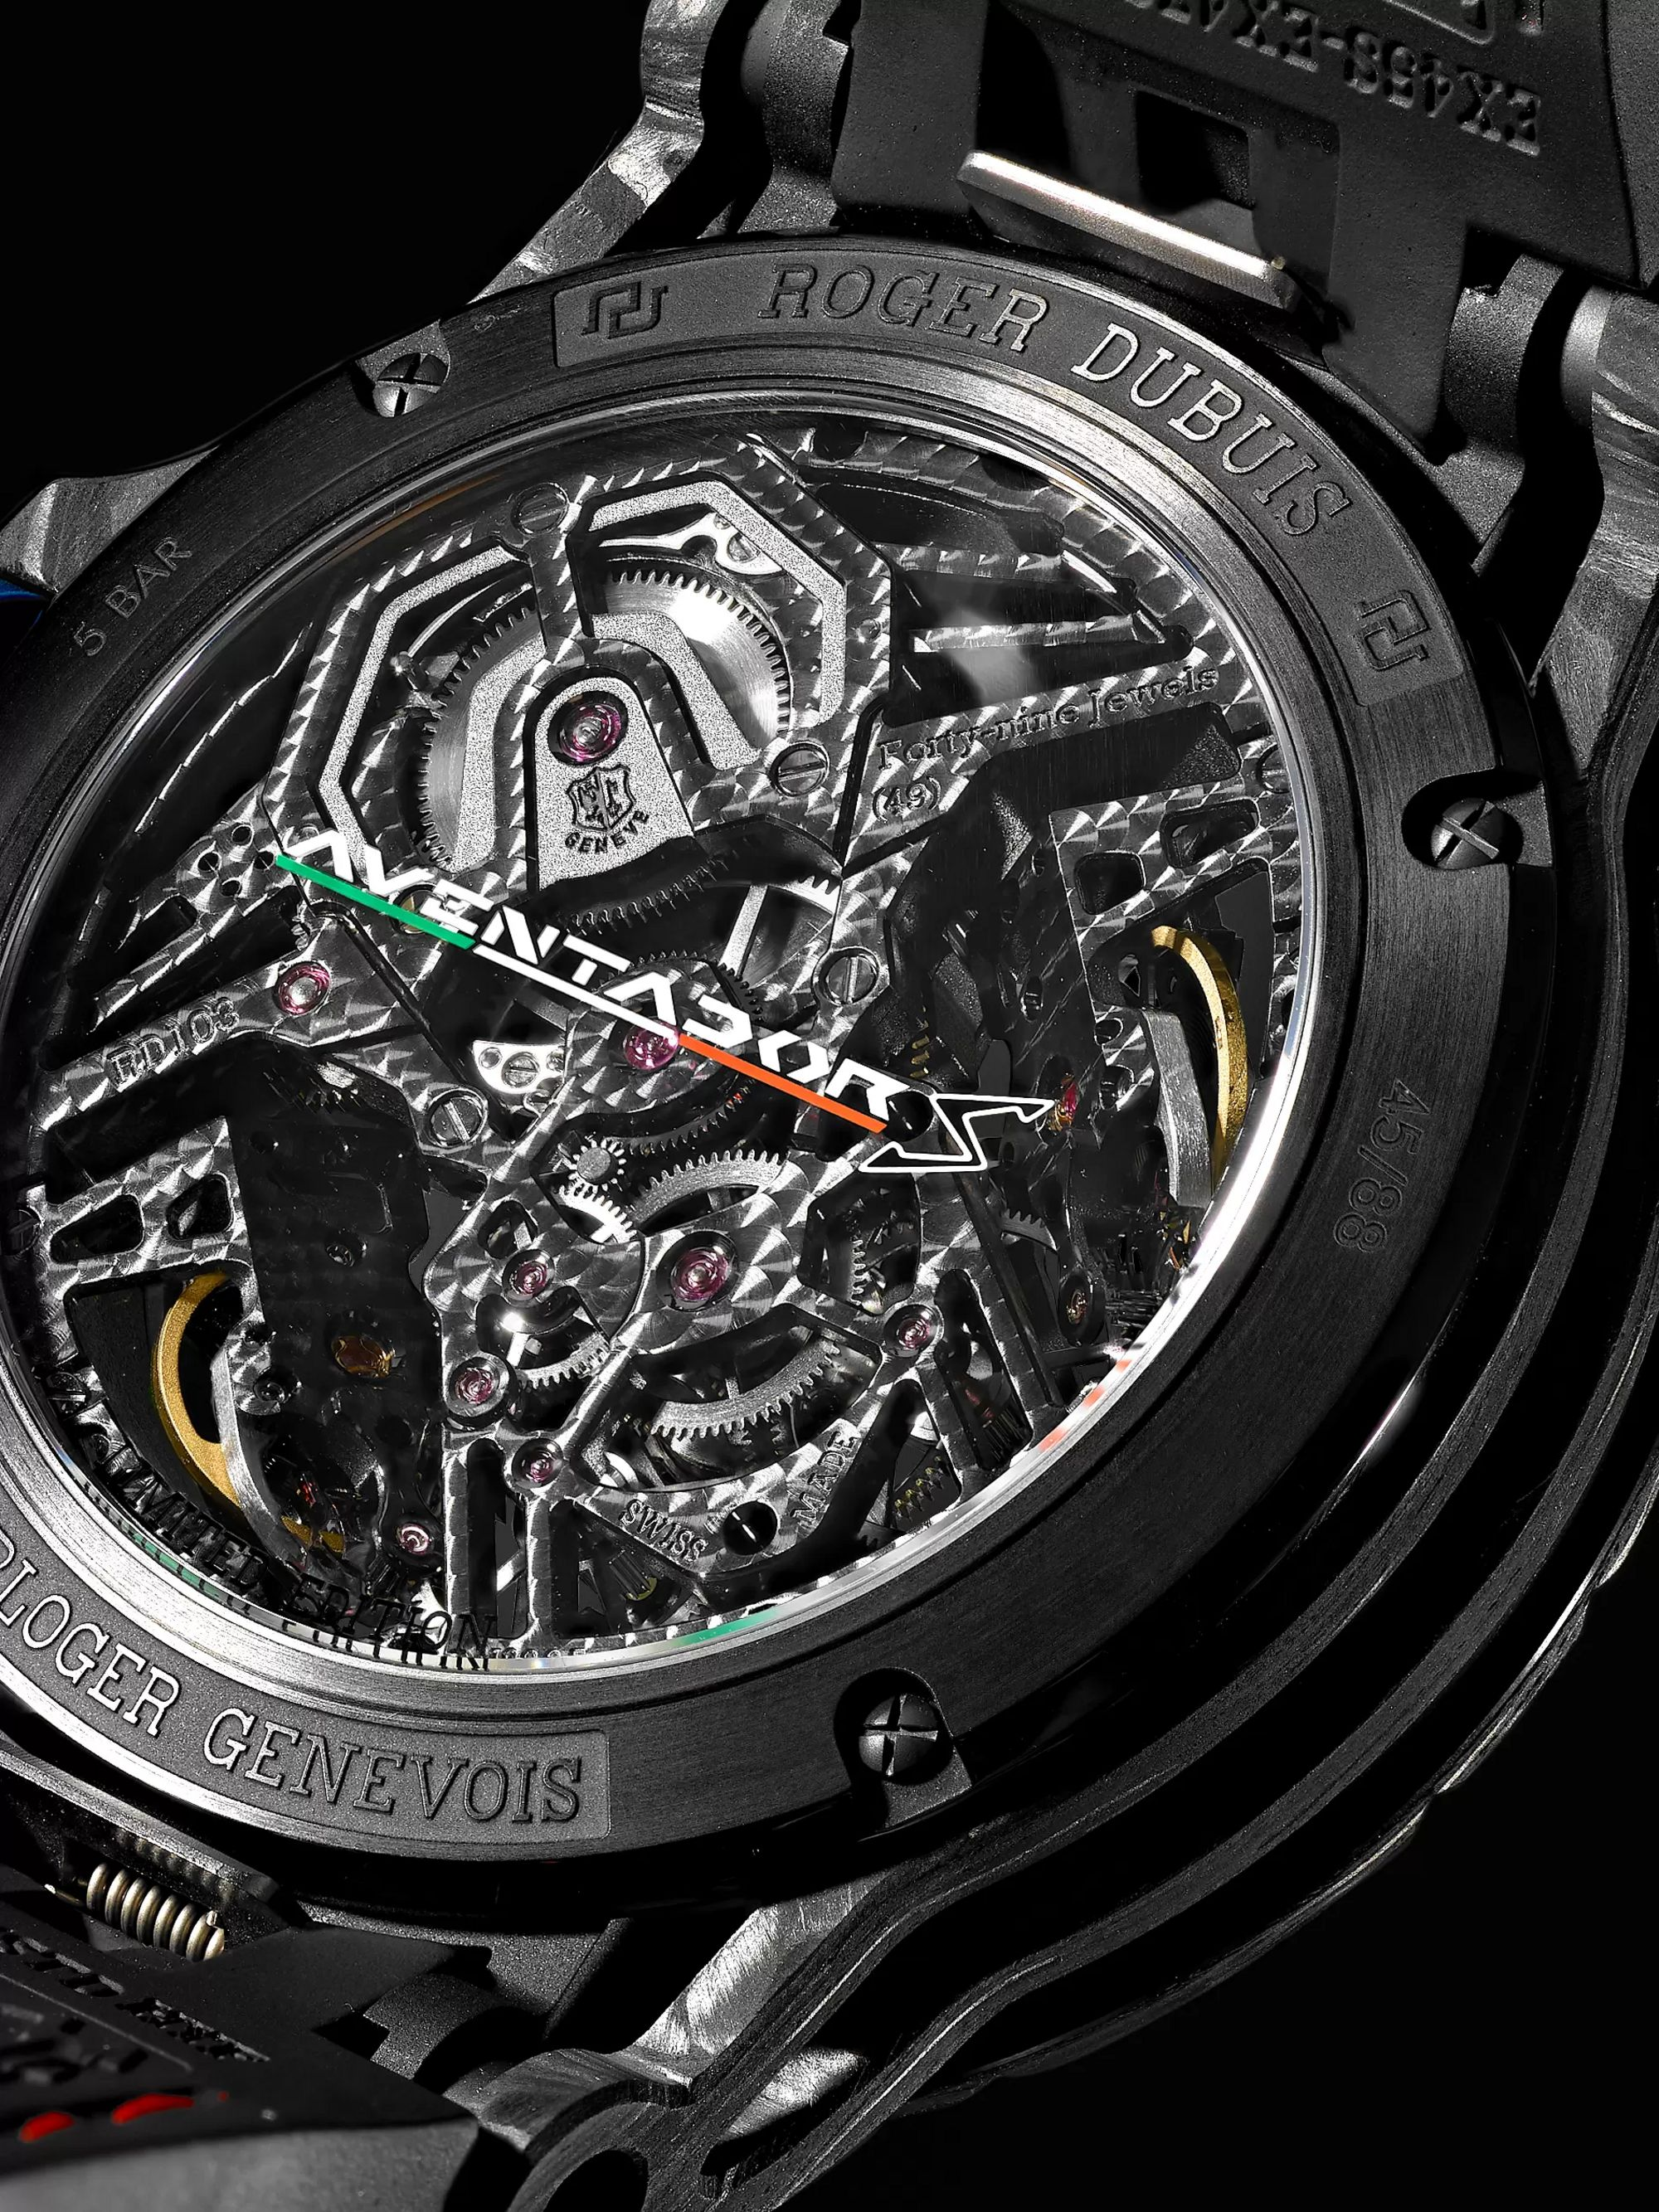 Roger Dubuis Excalibur Aventador S Limited Edition Skeleton 45mm Carbon, Rubber and Alcantara Watch, Ref. No. RDDBEX0686